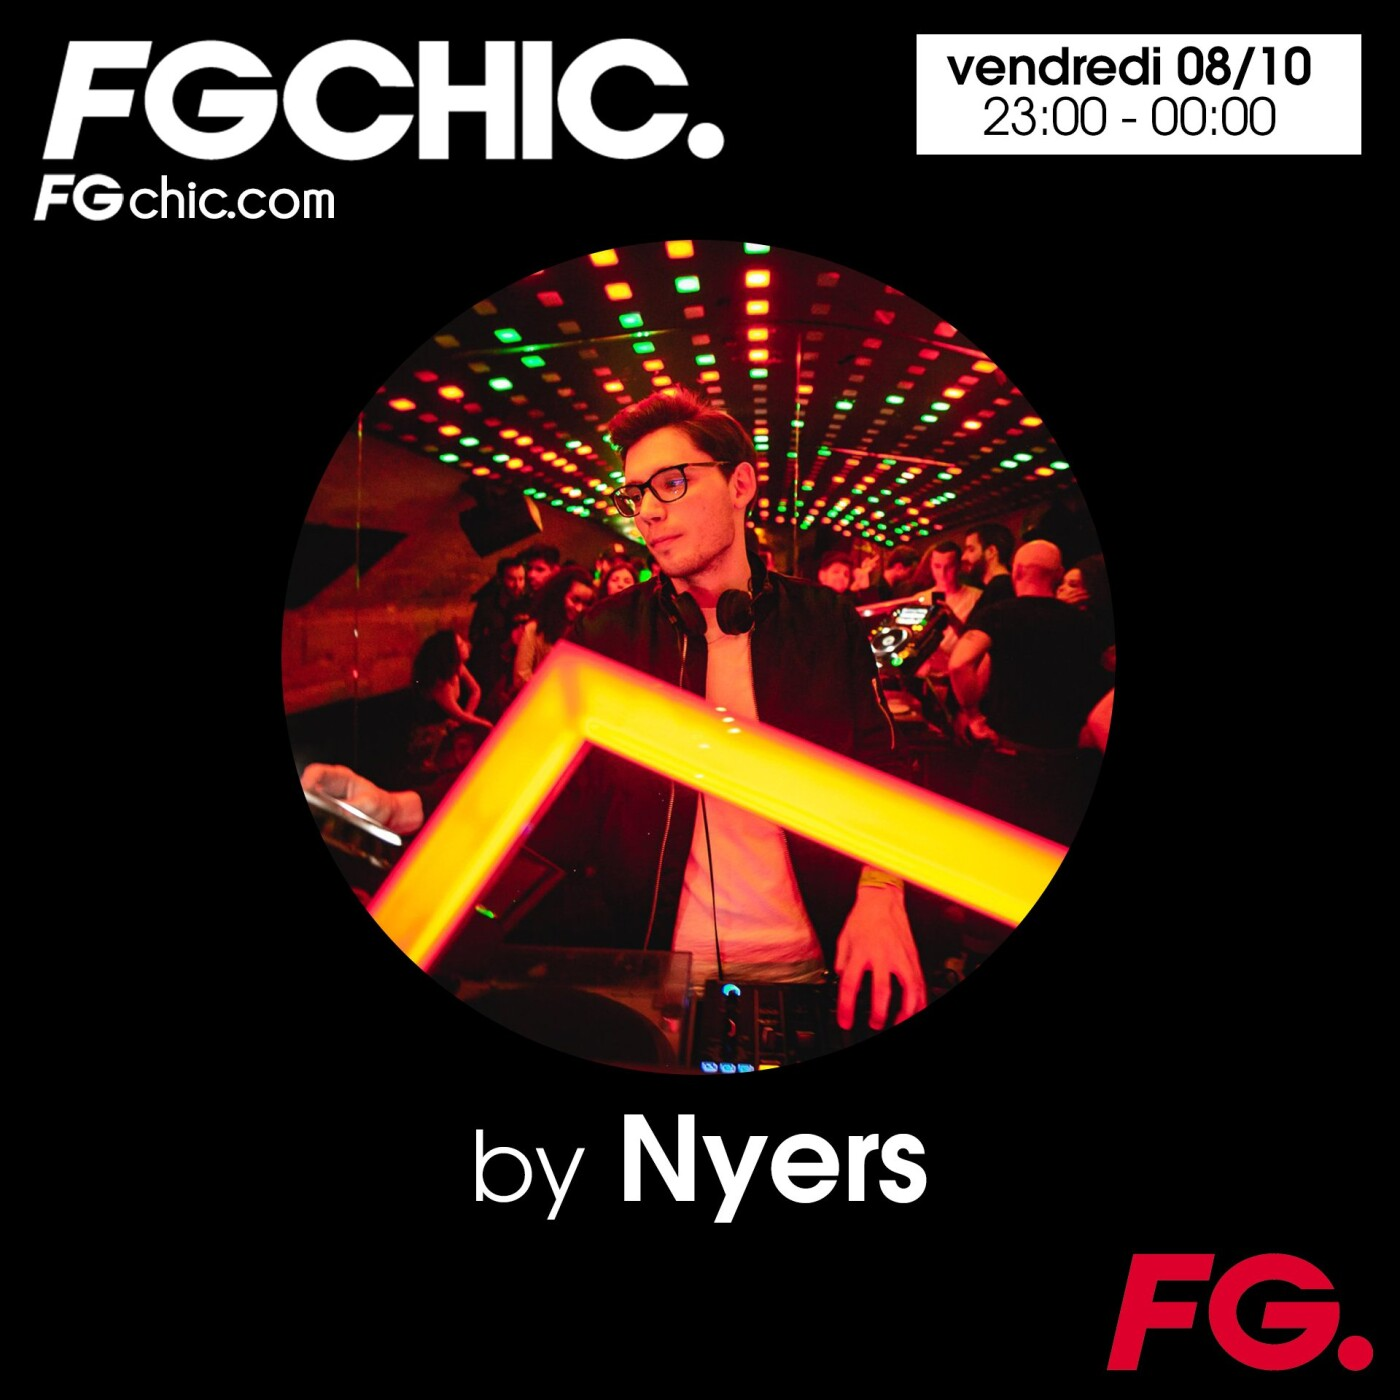 FG CHIC MIX BY NYERS